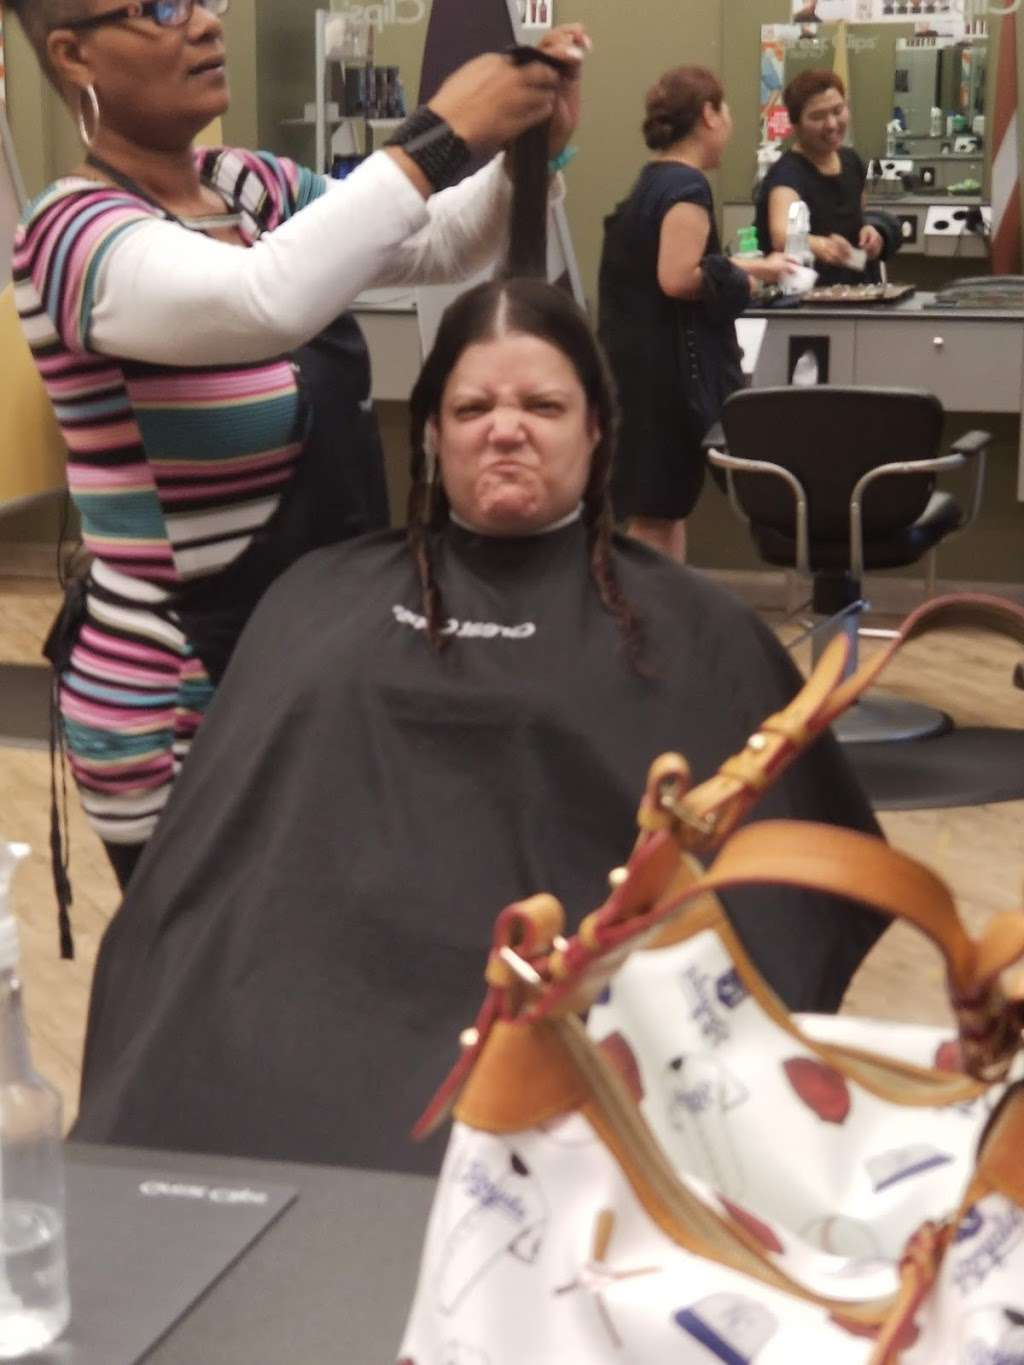 Great Clips - hair care  | Photo 3 of 4 | Address: 10154 W 119th St, Overland Park, KS 66213, USA | Phone: (913) 338-2580